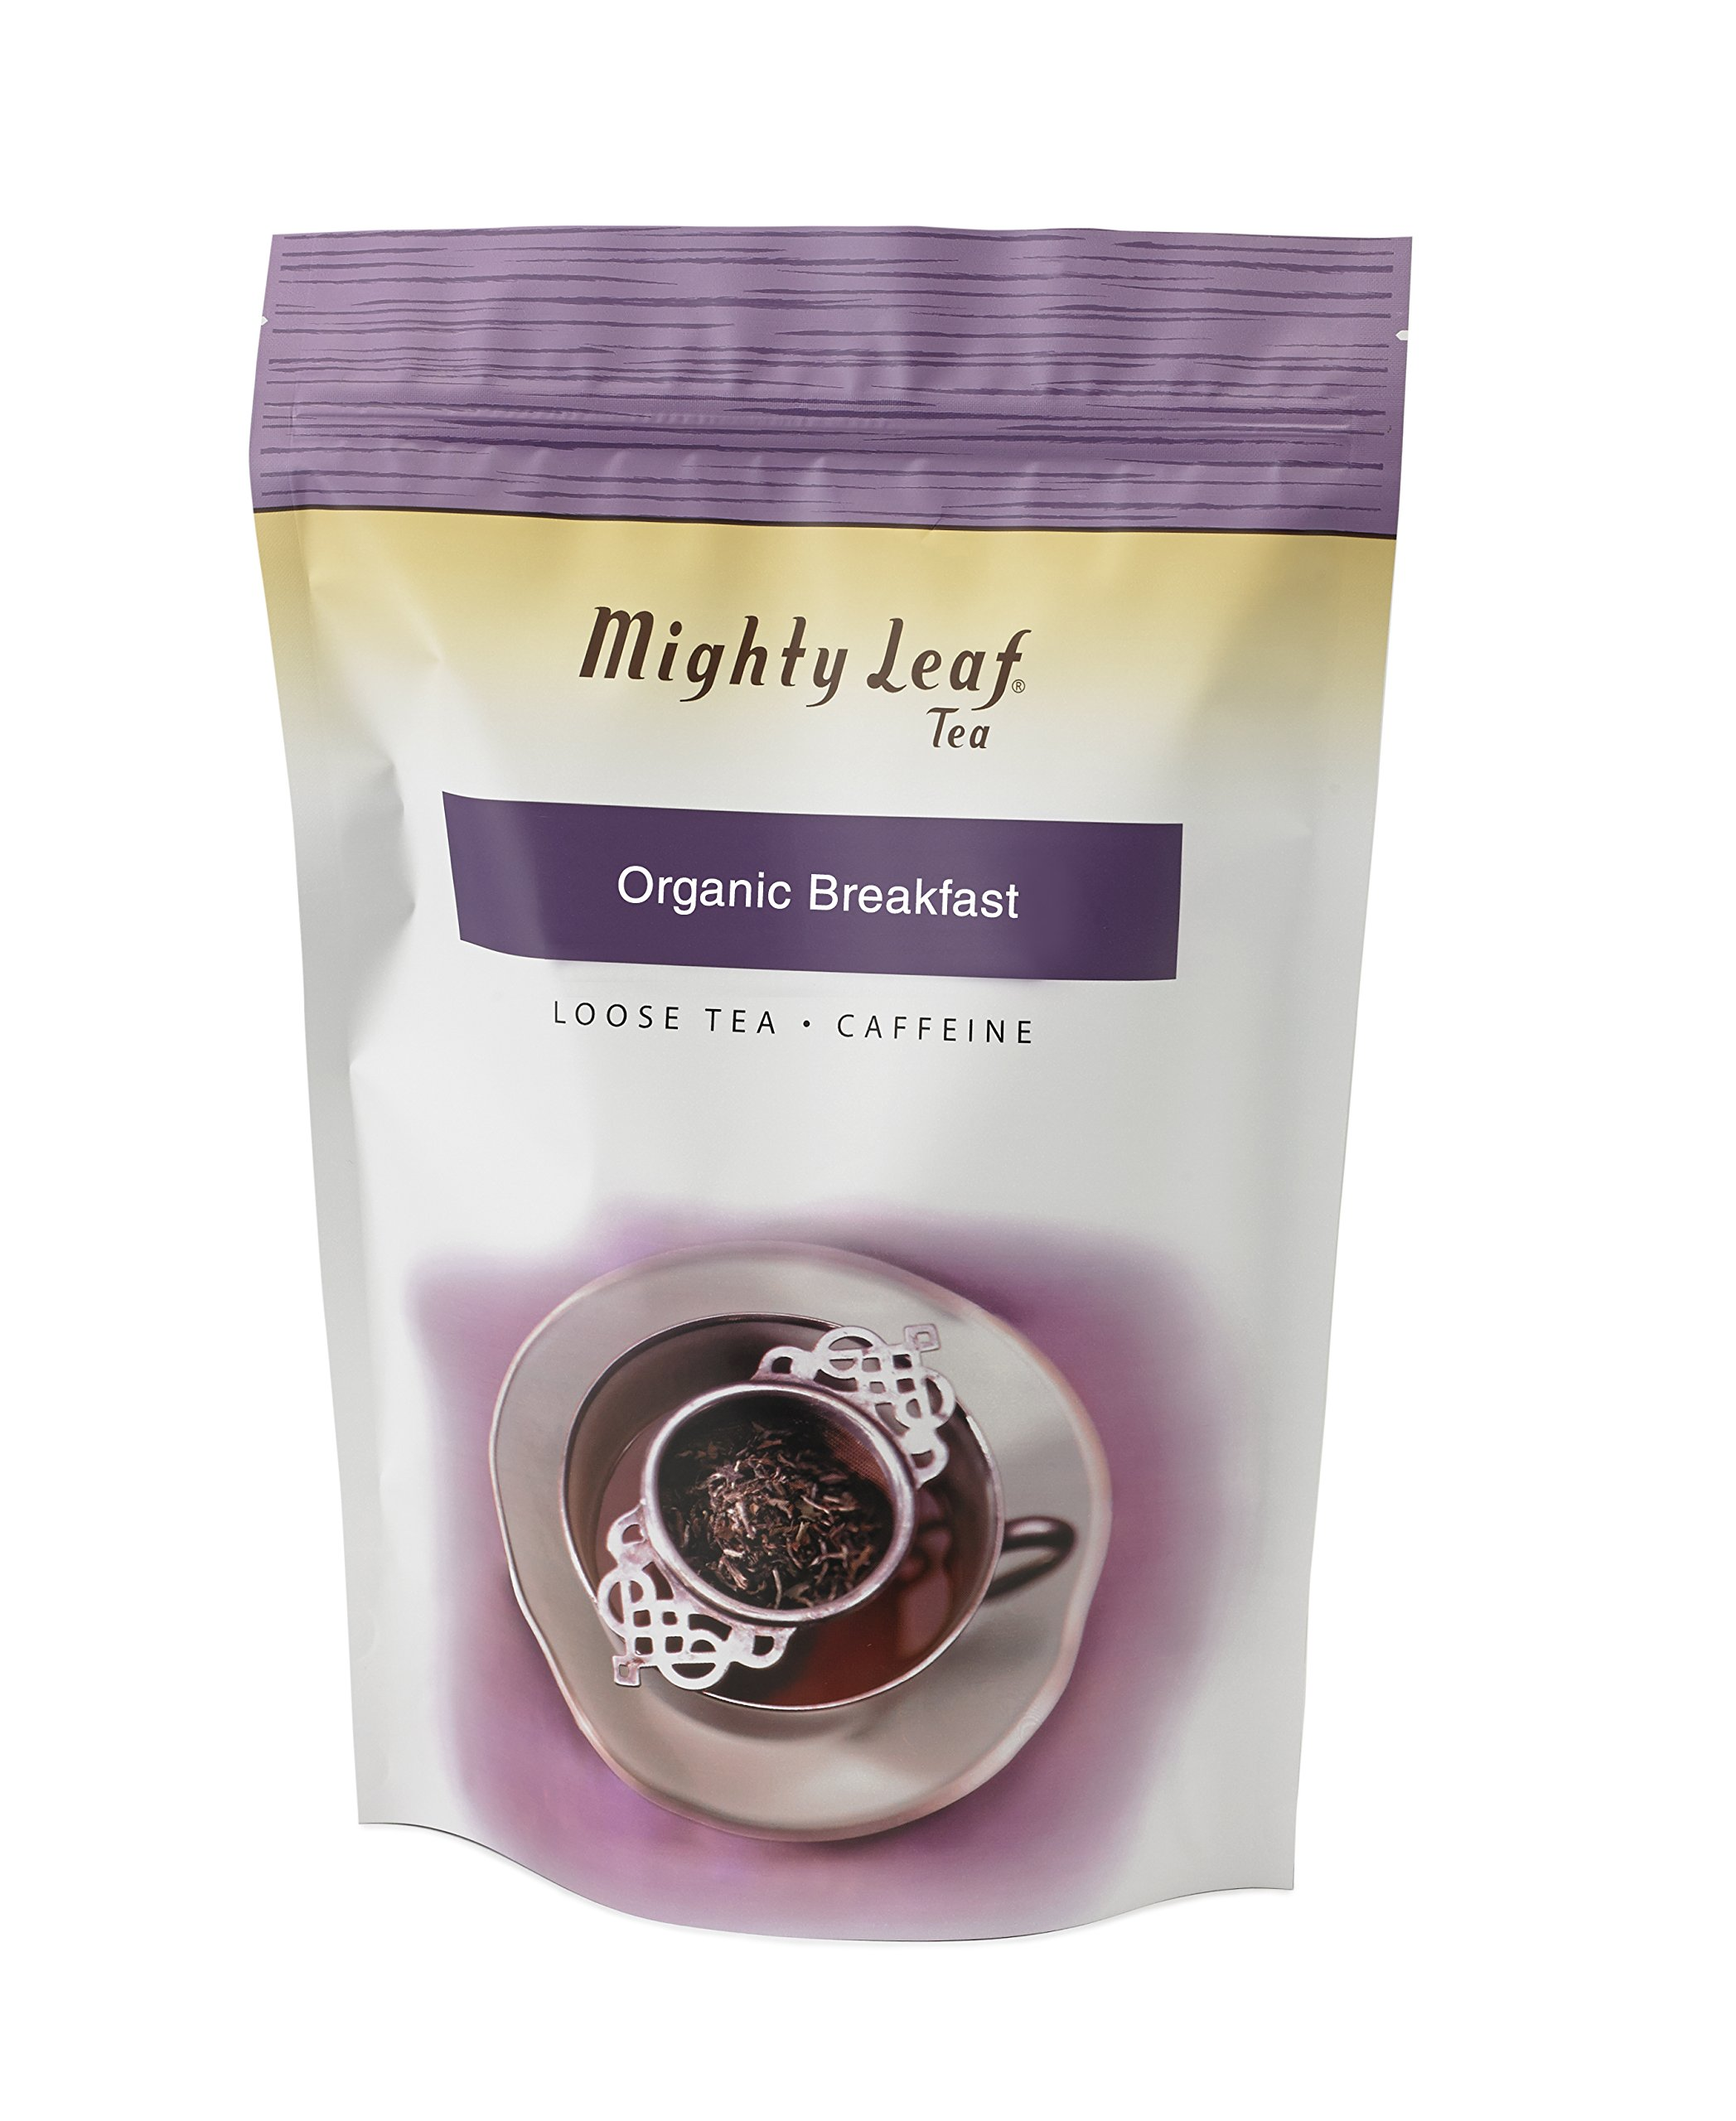 Mighty Leaf Loose Leaf Organic Breakfast Tea, 1 Pound Pouch Organic Caffeinated Black Tea, Delicious as Hot Tea or Iced Tea, Plain or Sweetened with Honey or Sugar, Steep with Tea Infuser or Tea Ball